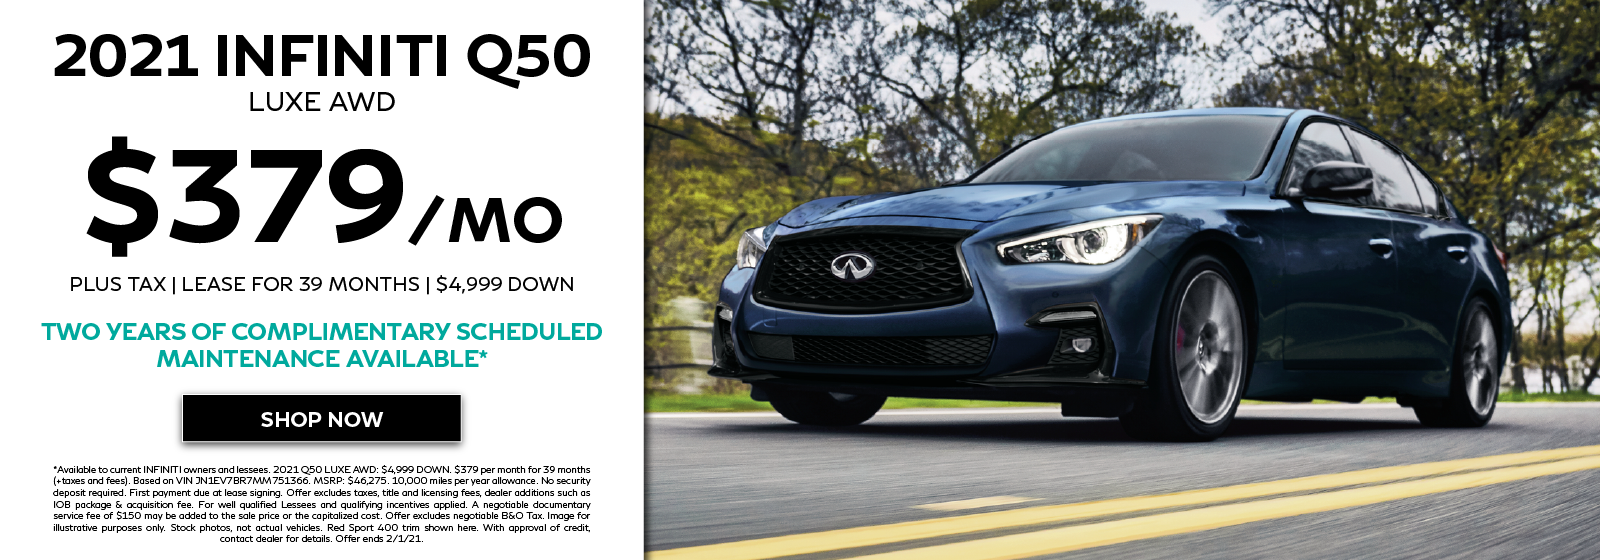 Well-qualified lessees can lease a new 2021 INFINITI Q50 LUXE AWD for $379 per month for 39 months plus get two years complimentary scheduled maintenance. Click to view inventory.